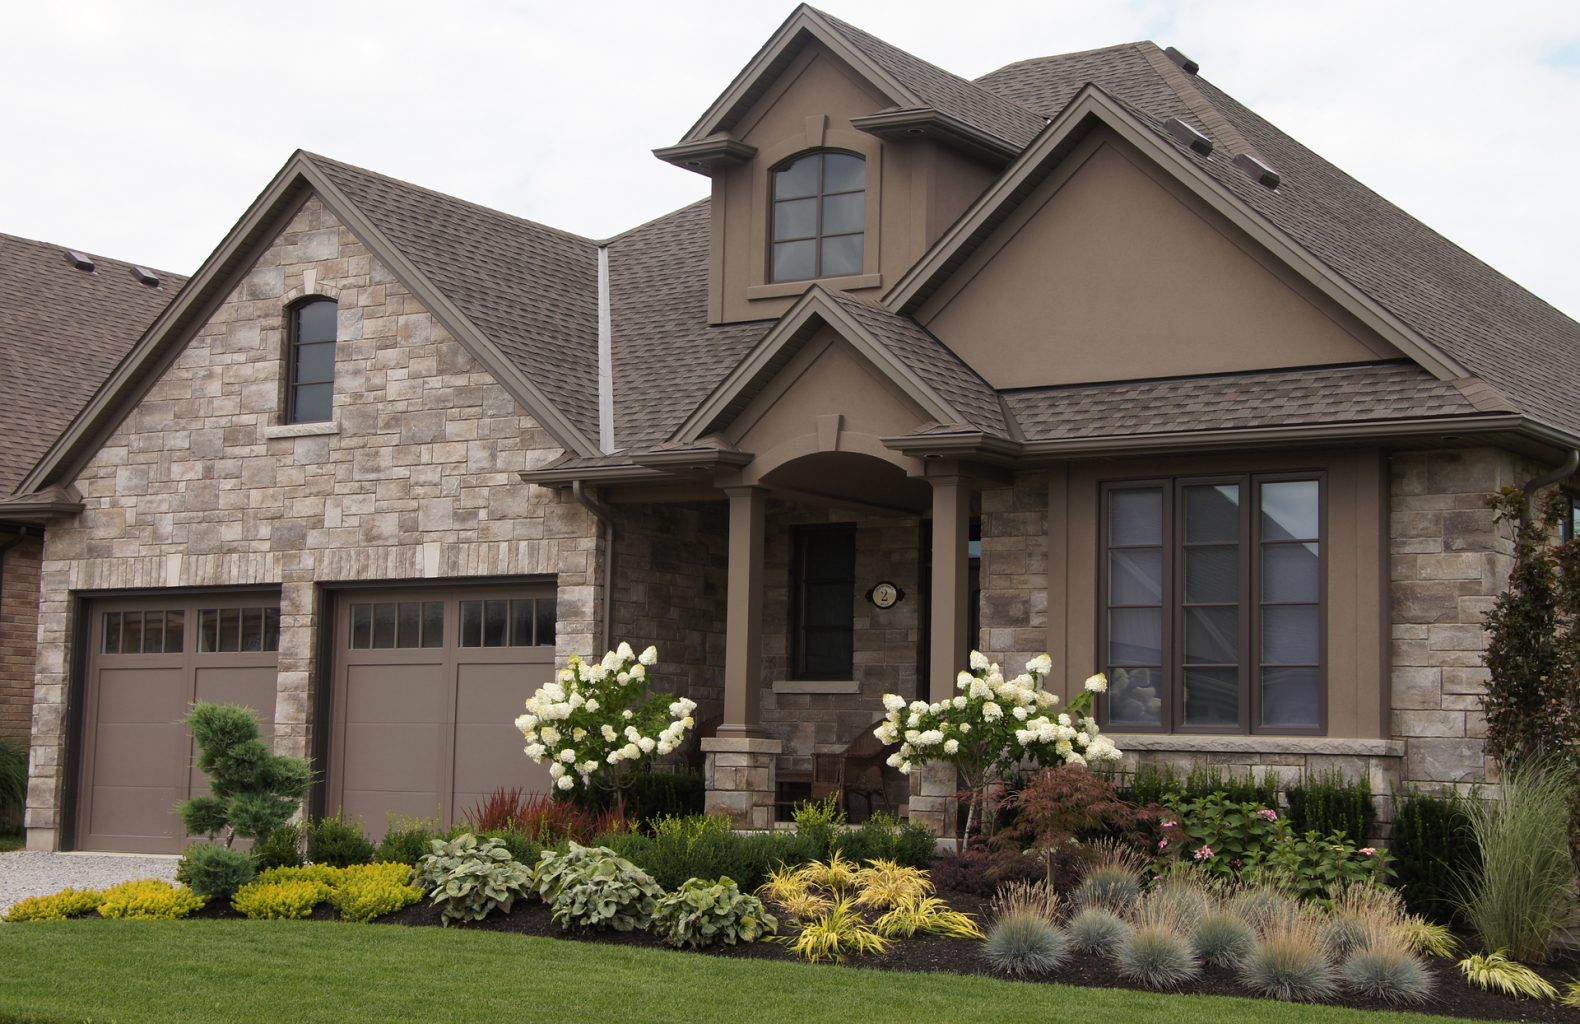 Home Improvement with Window Tinting in Orange County, California